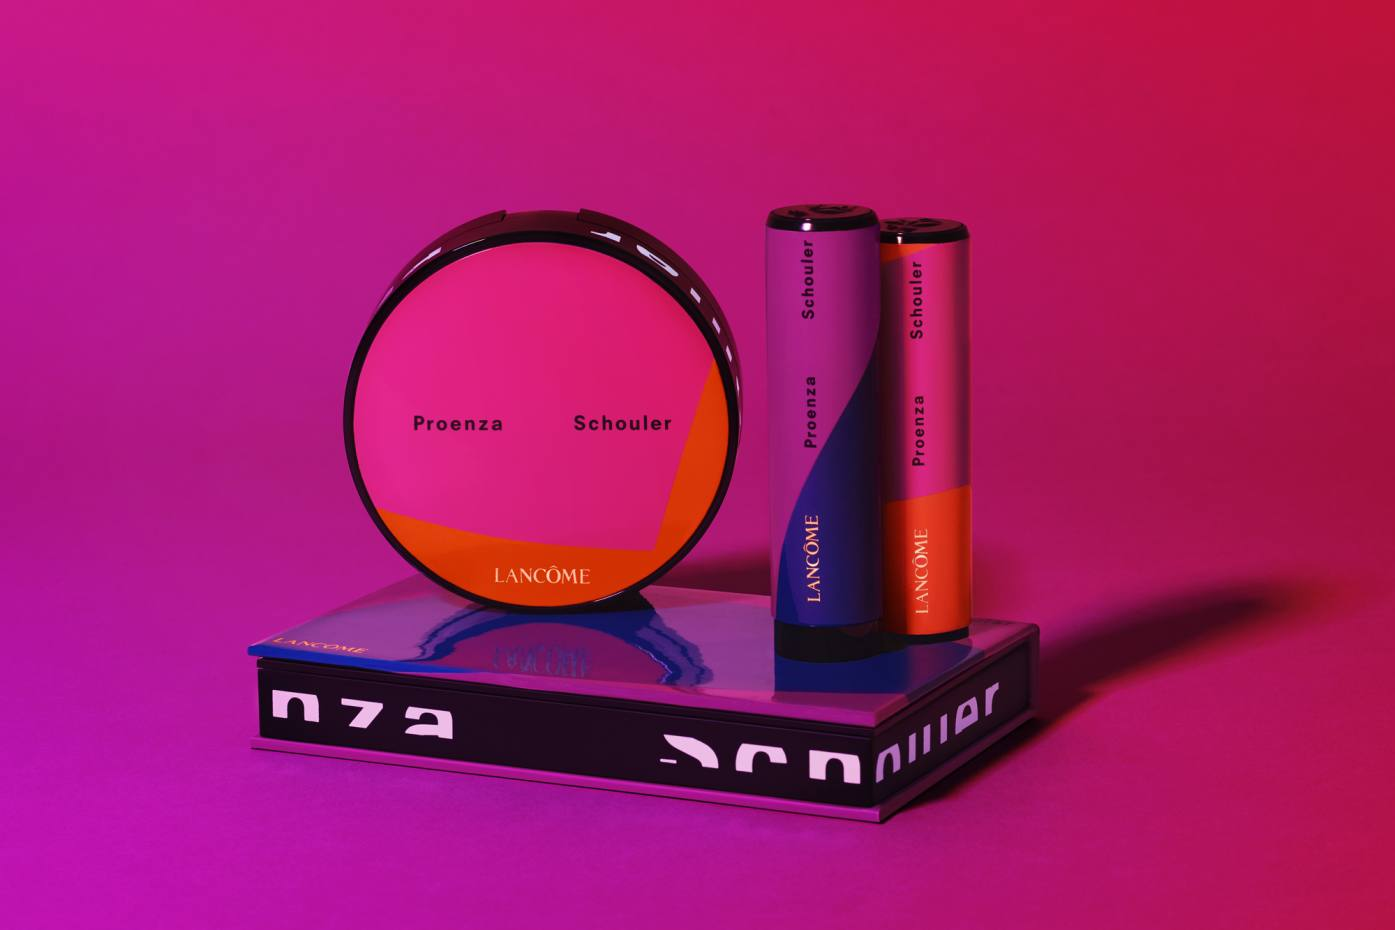 The cosmetics come in funky packaging coloured vivid shades of orange, fuchsia and electric blue